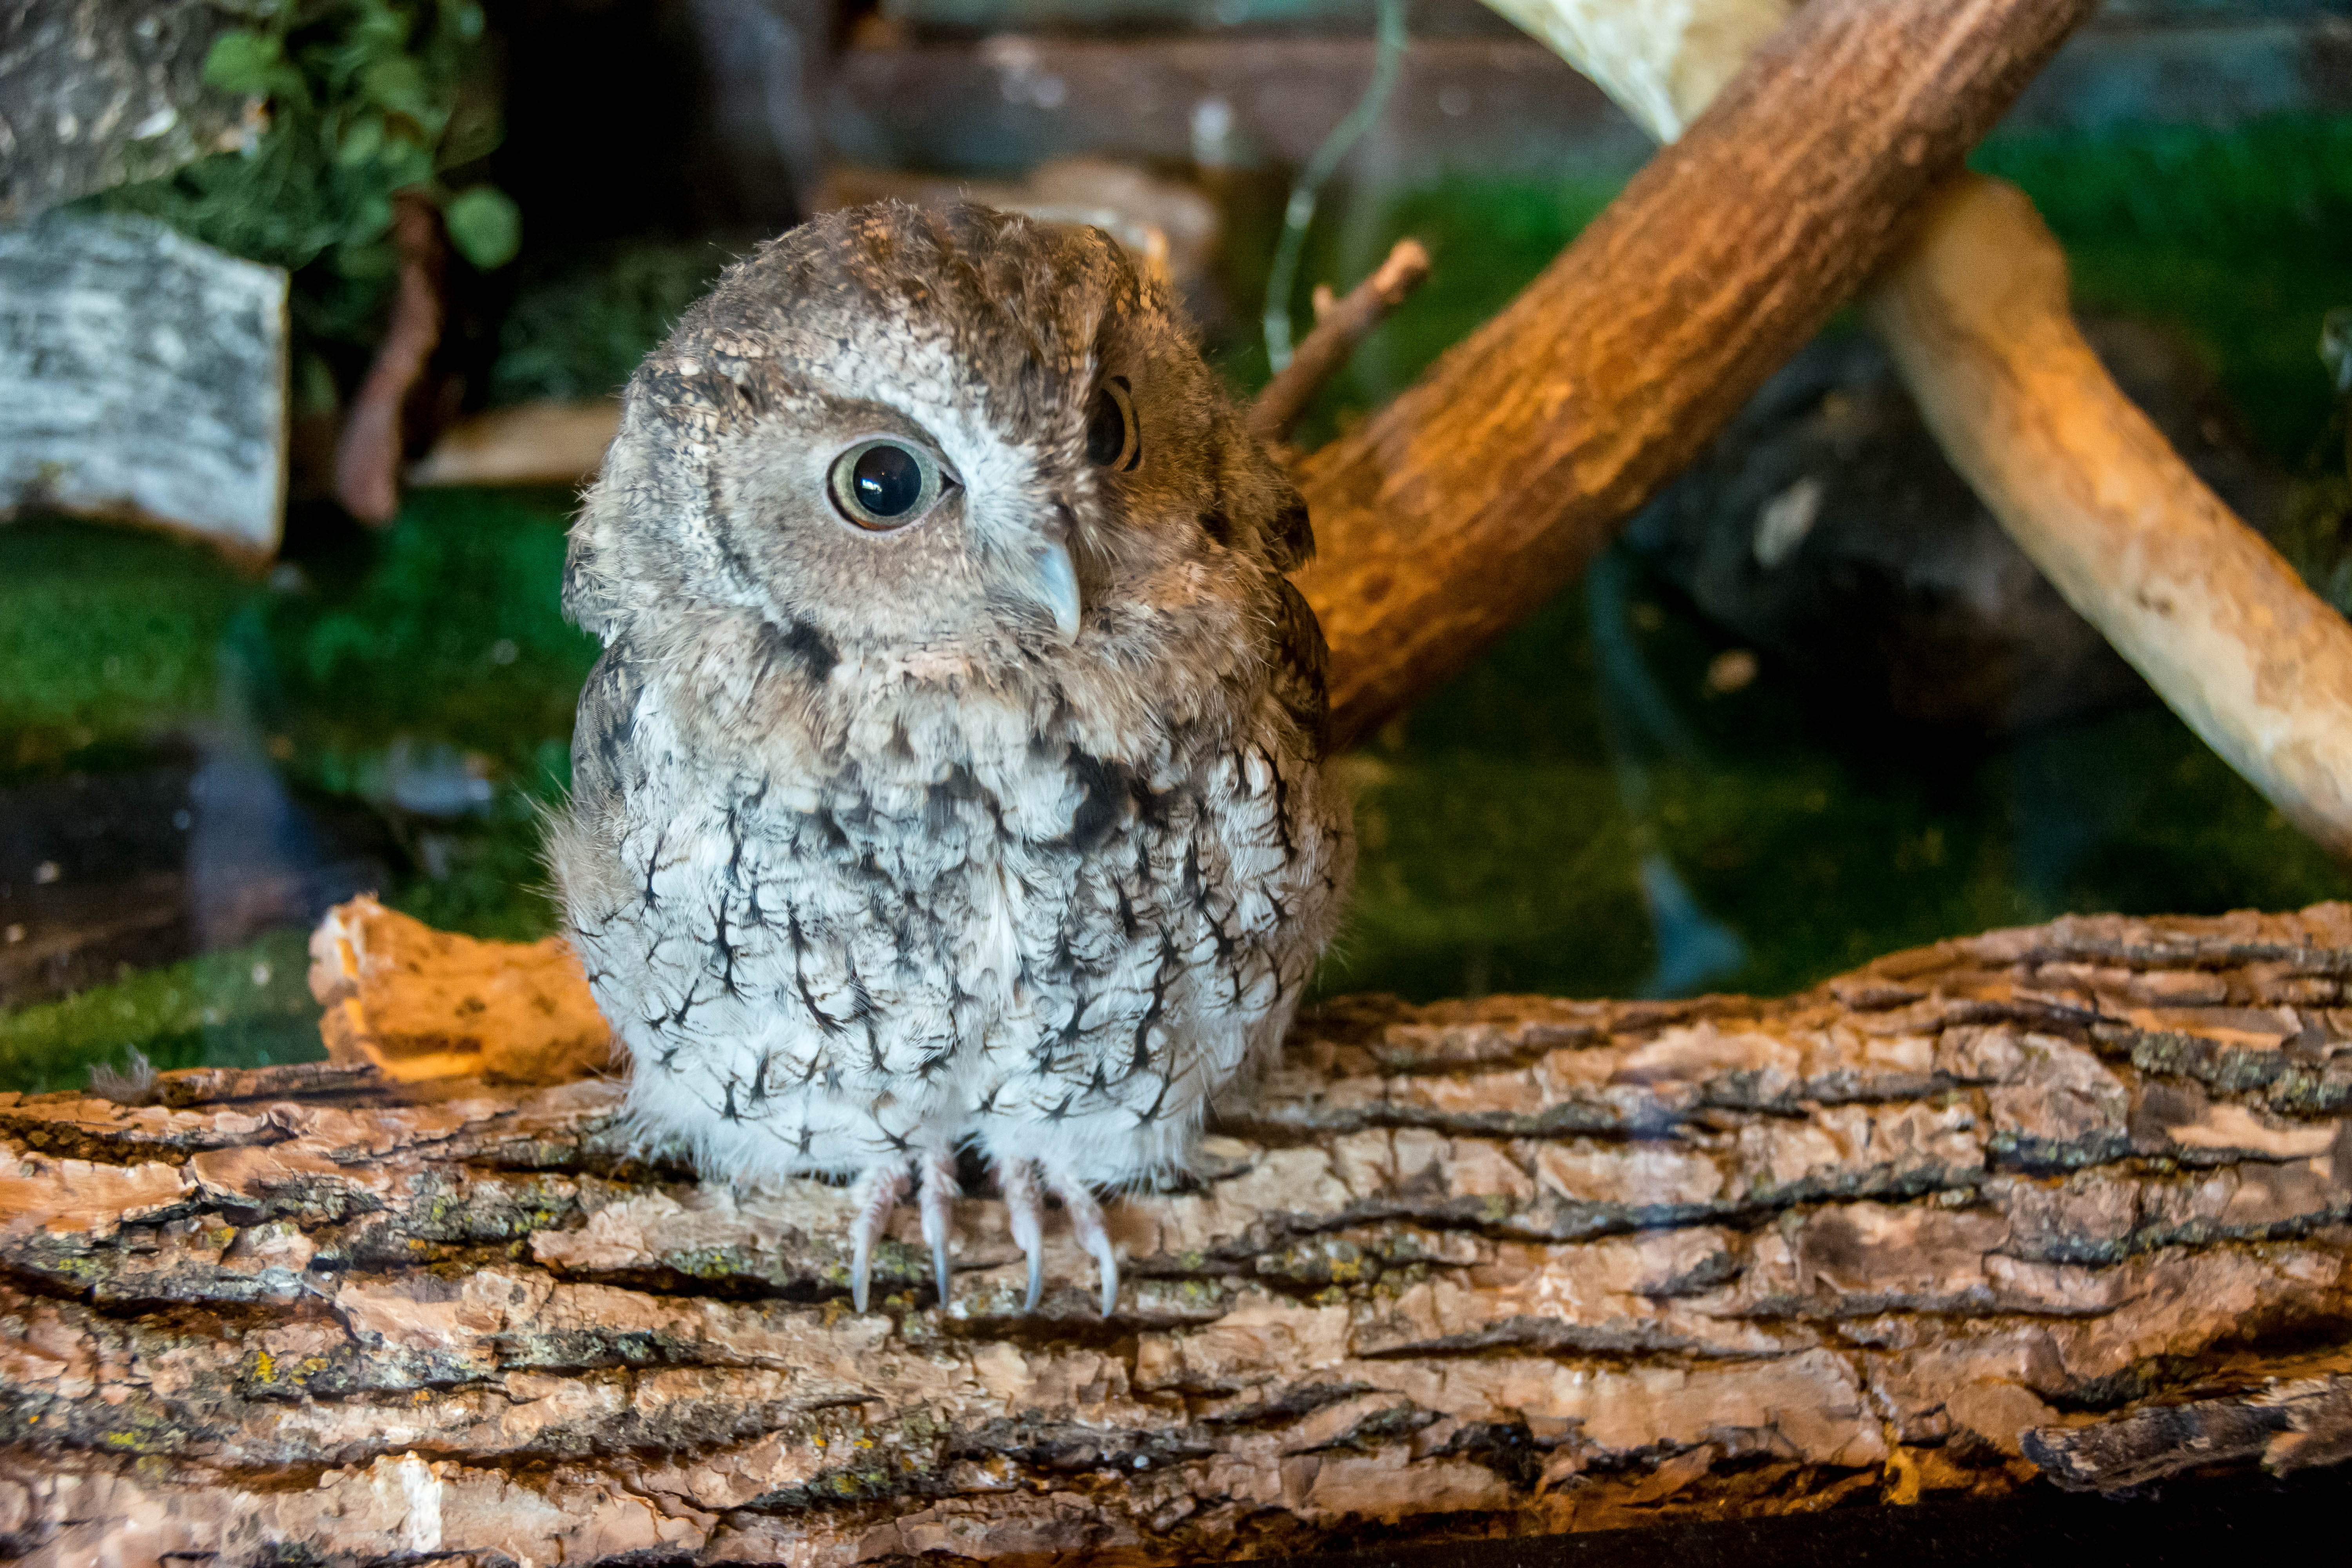 rhetorical analysis owls mary oliver In the passage from owls, mary oliver uses various rethorical devices to convey the complexity of her response to nature the use of imagery is prominent.